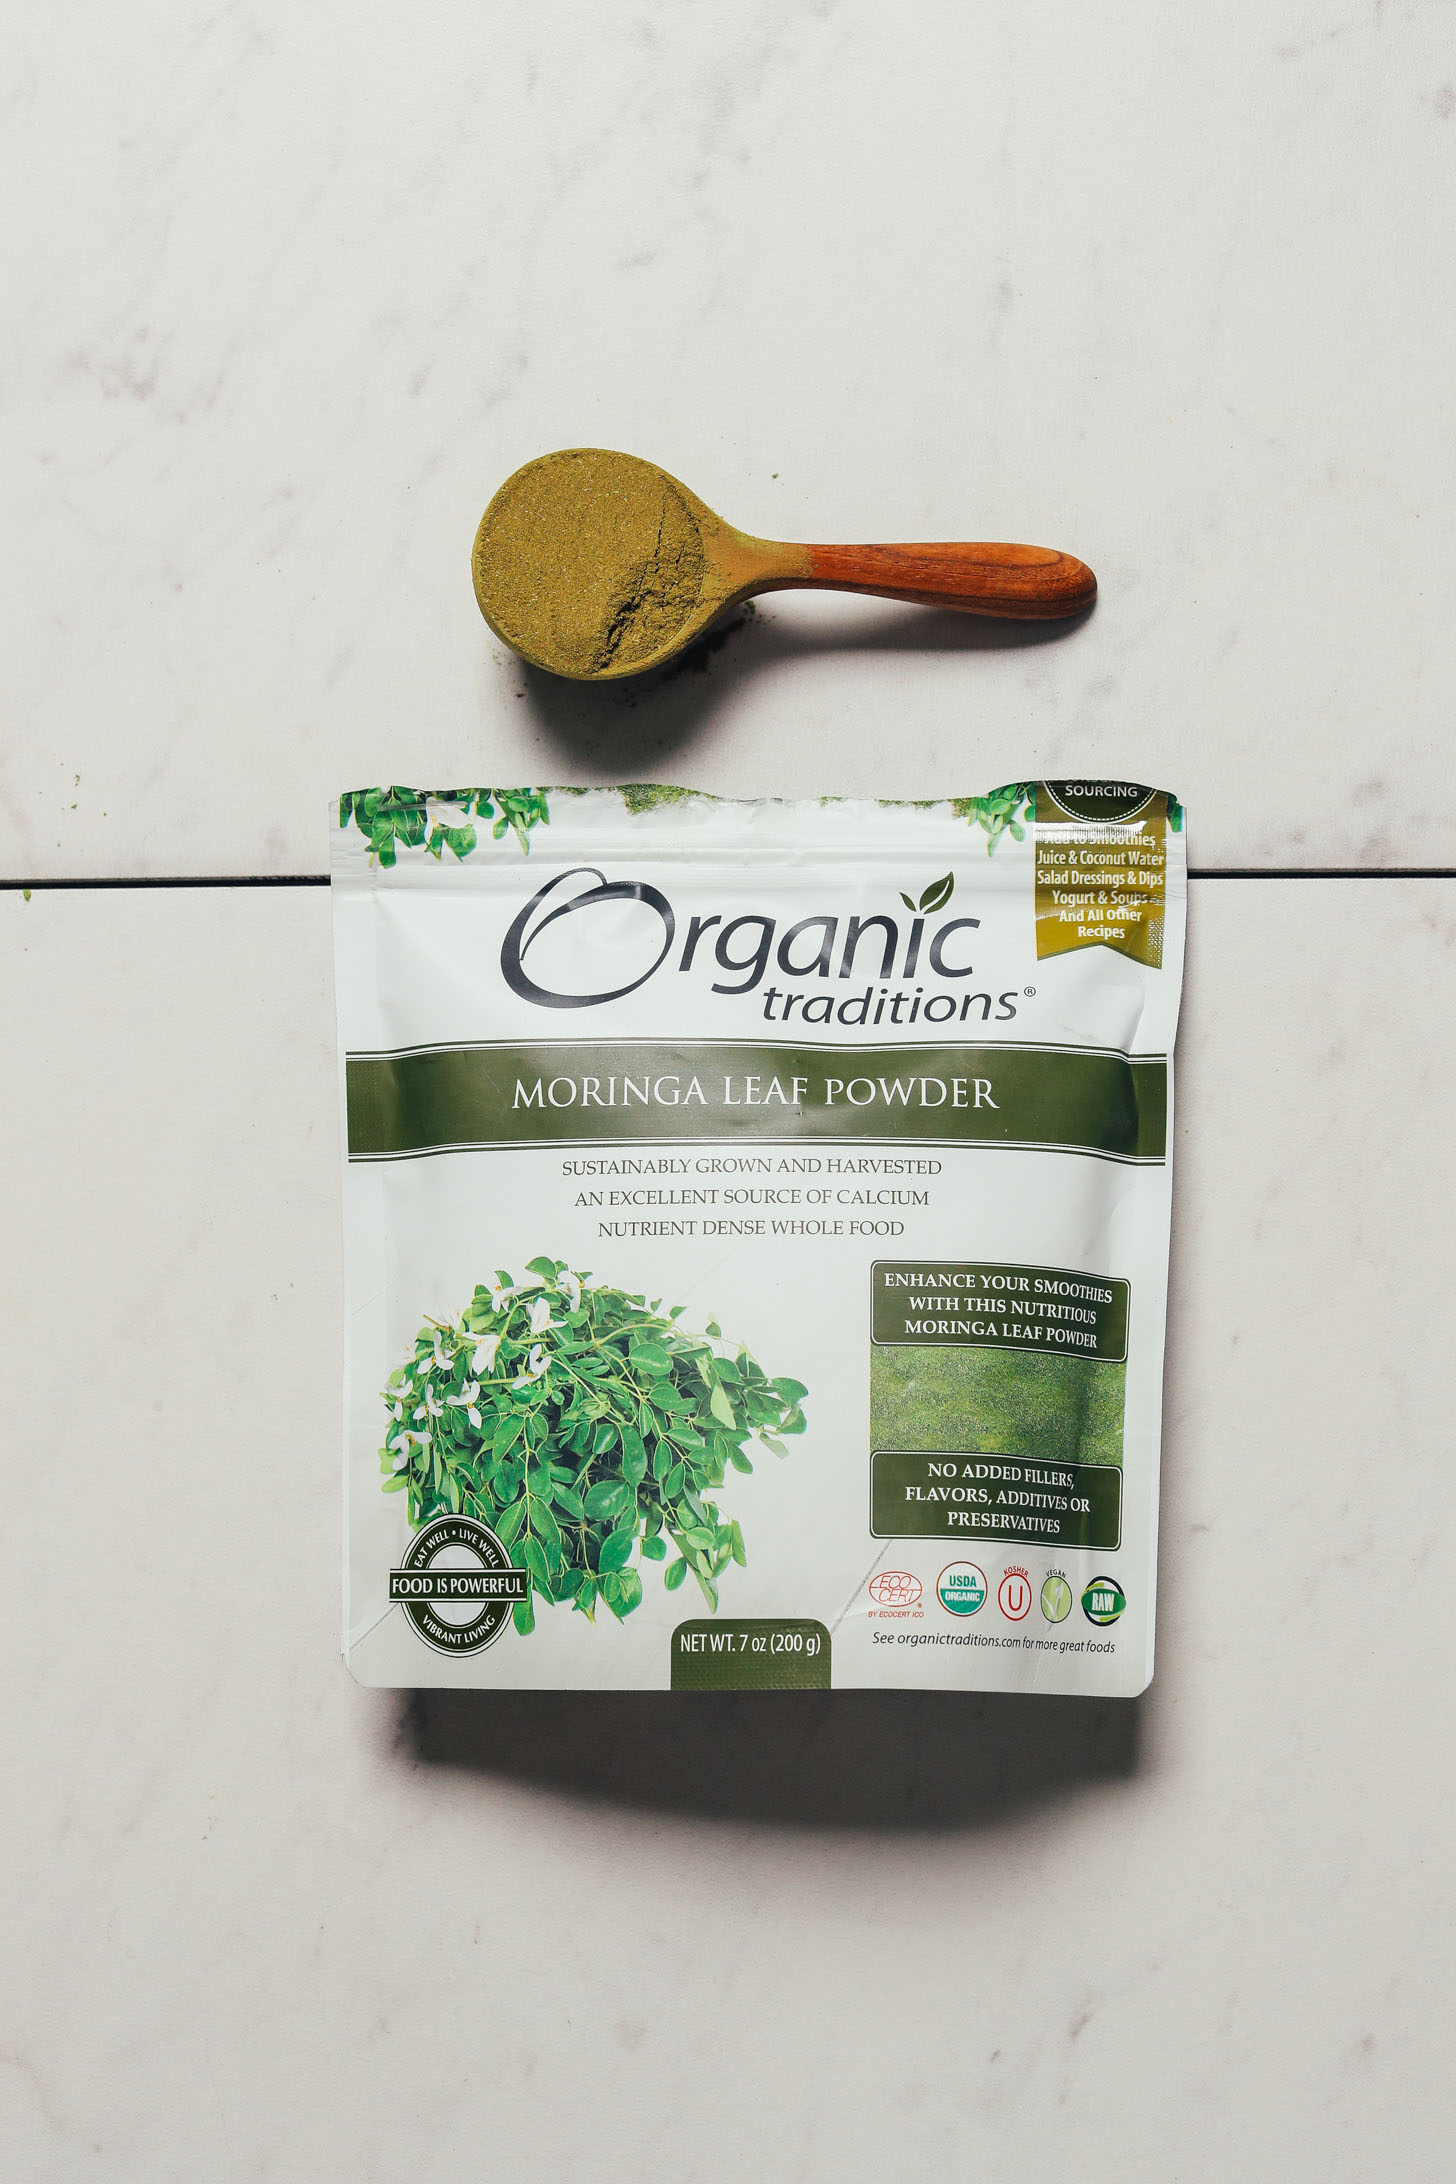 Spoonful of Organic Traditions Moringa Powder for our unbiased review of moringa powder brands